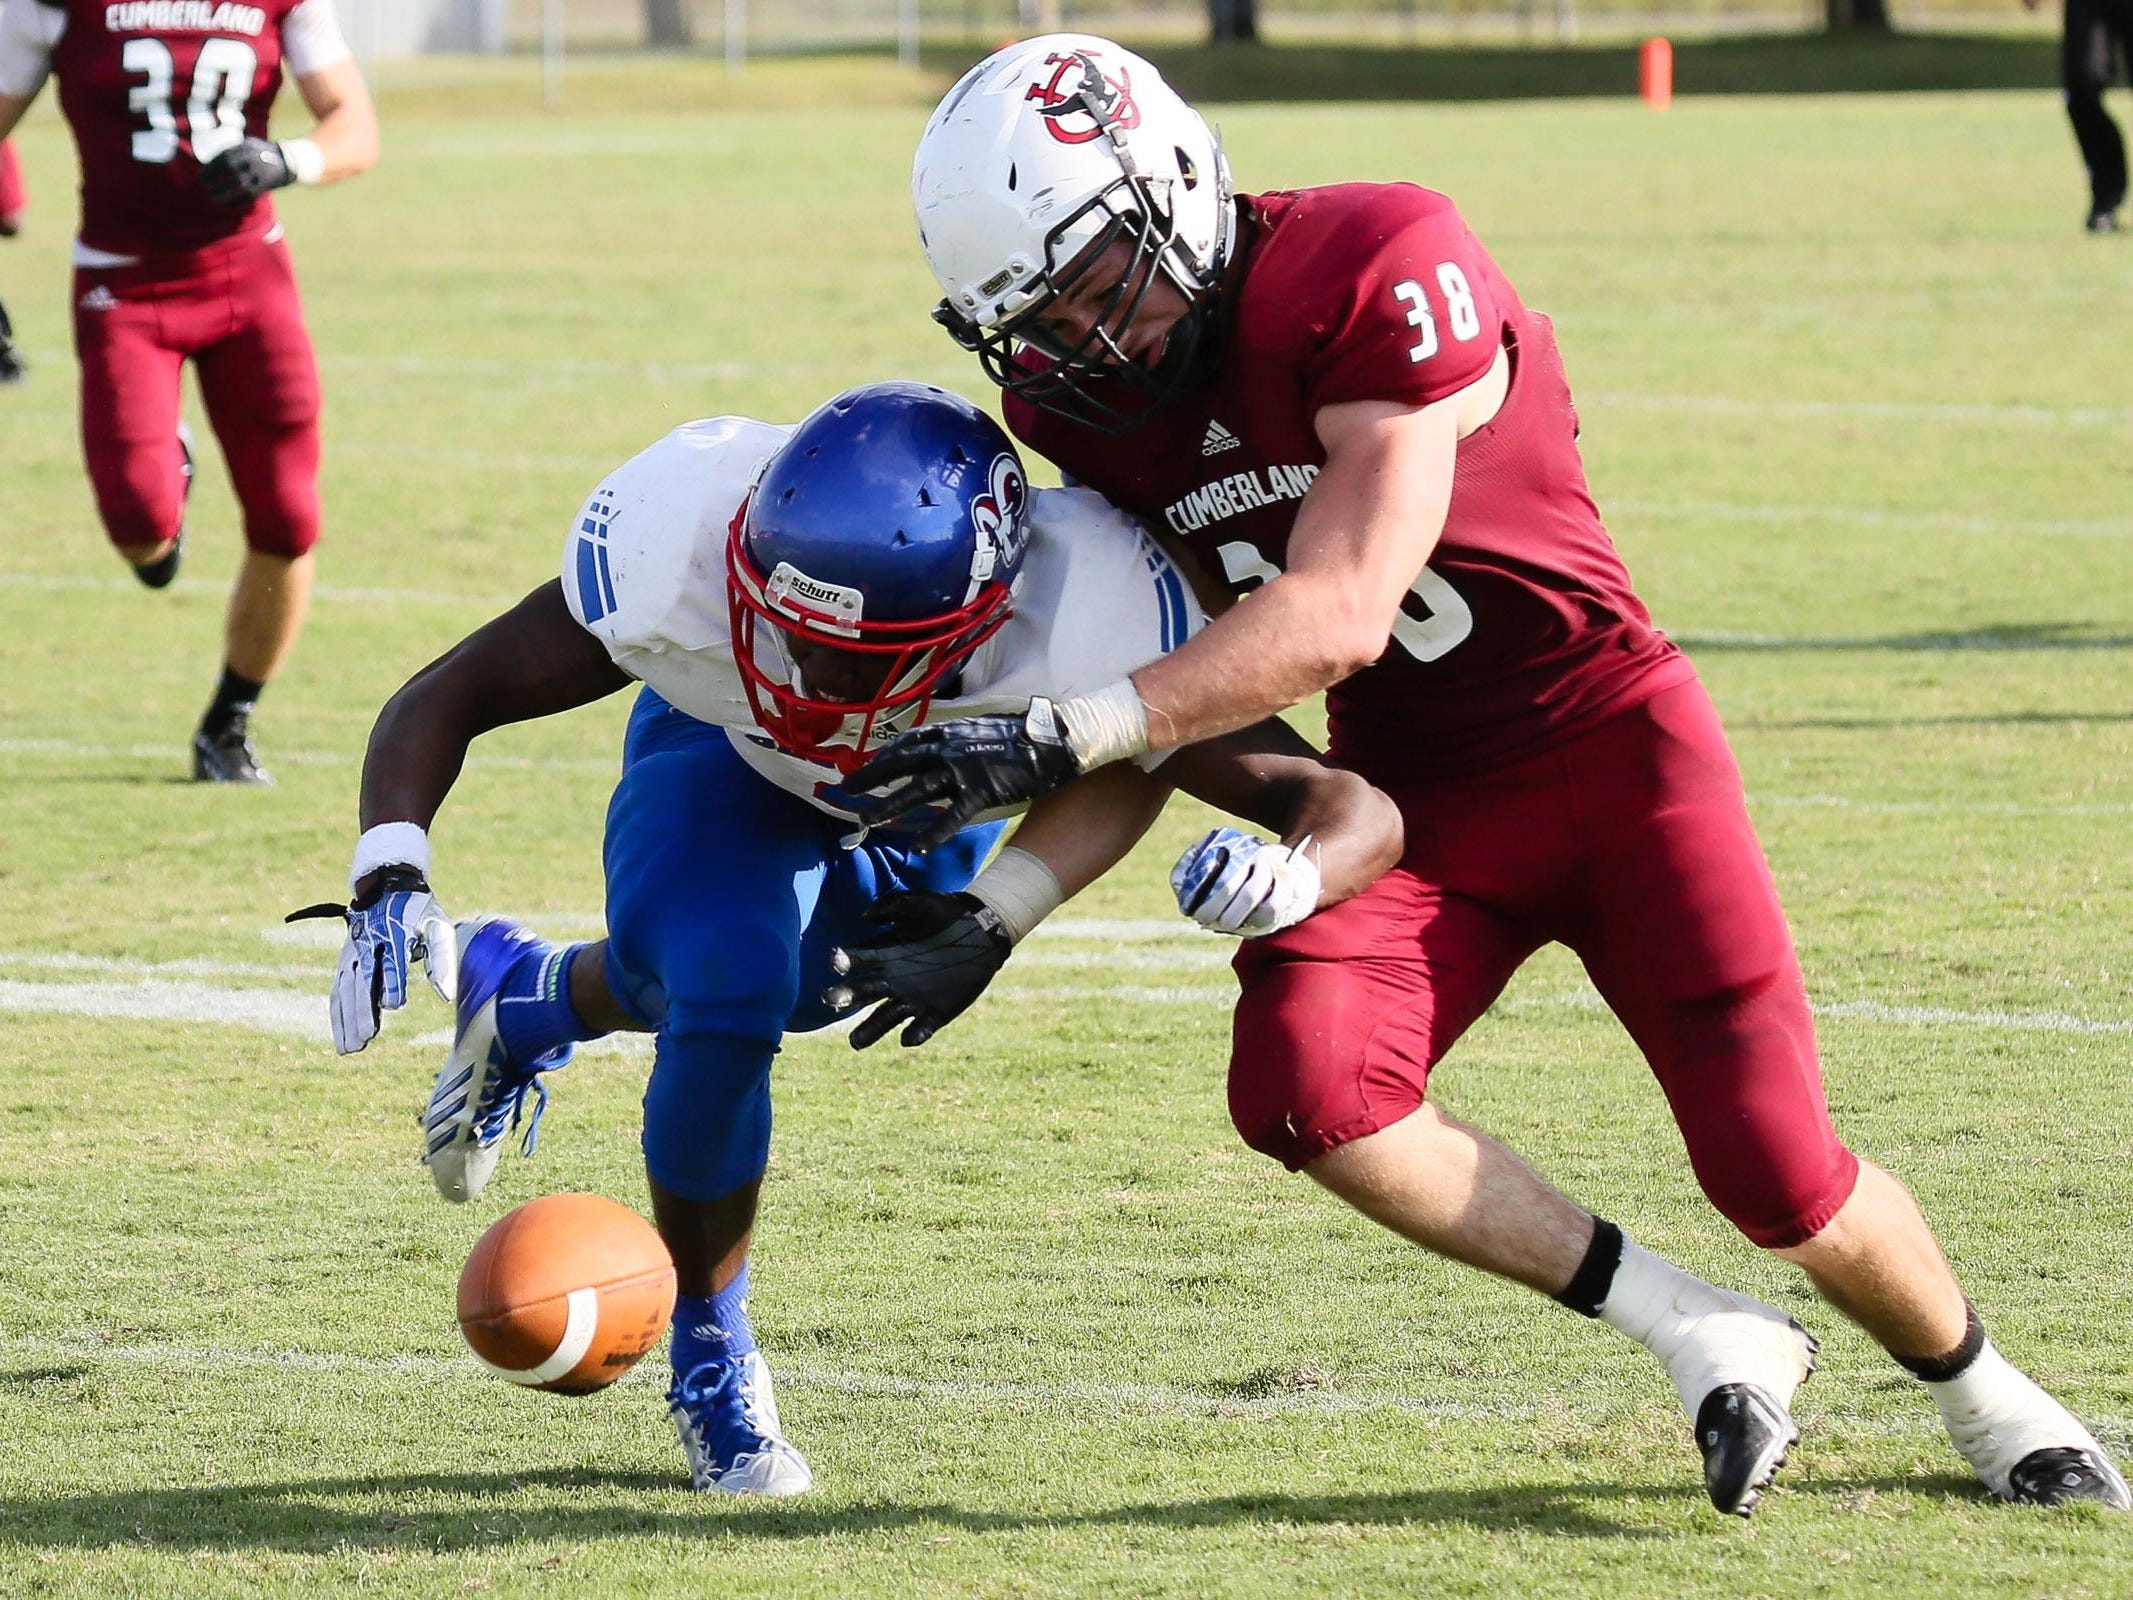 Cumberland's Nathan Jernigan has received the Tennessee Sports Writers Association's Defensive Football Player of the Week twice this season.